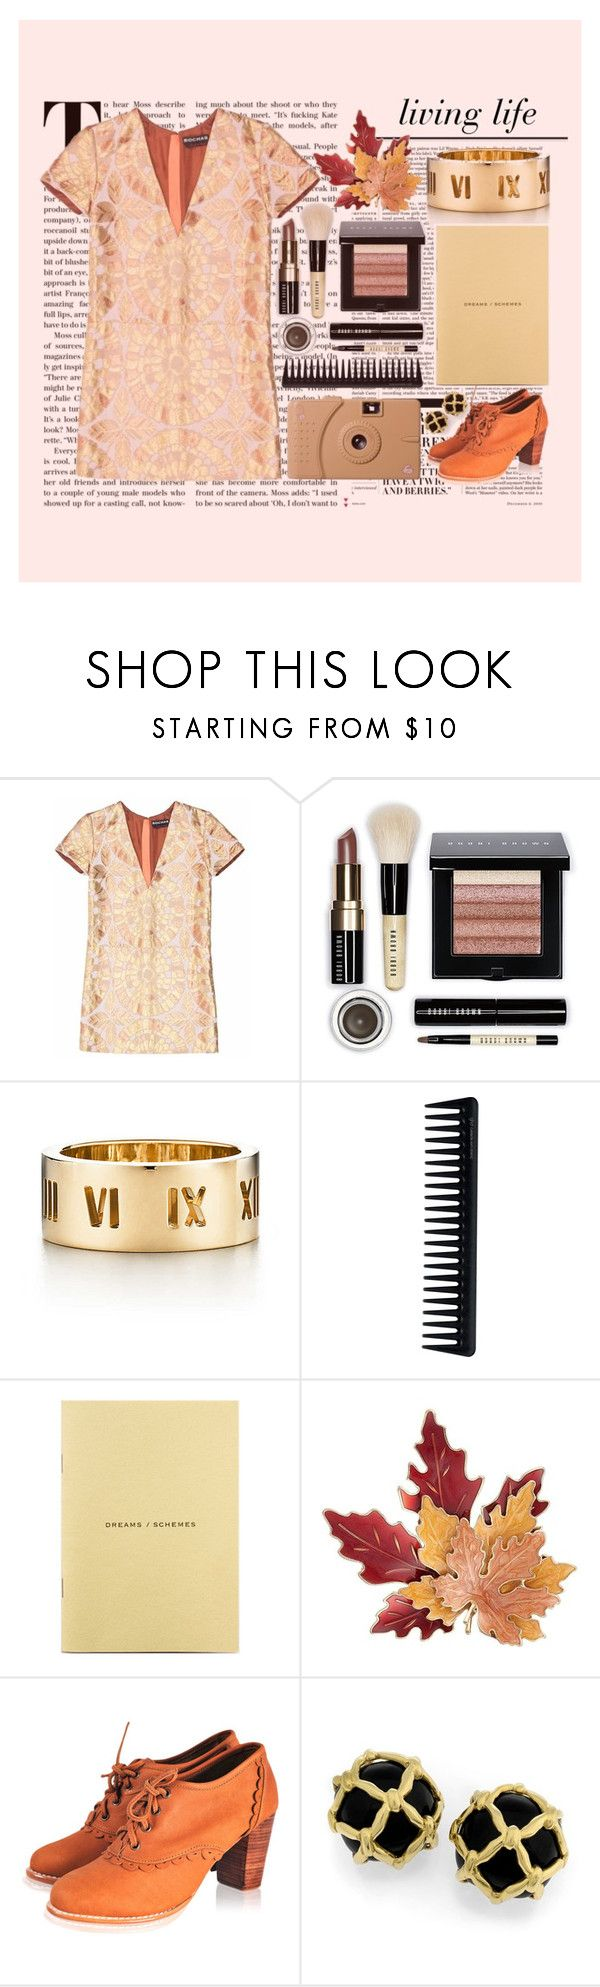 """my youth"" by skybluepink173 ❤ liked on Polyvore featuring Nicki Minaj, Rochas, Bobbi Brown Cosmetics, Poketo, Tiffany & Co., GHD and Croft & Barrow"